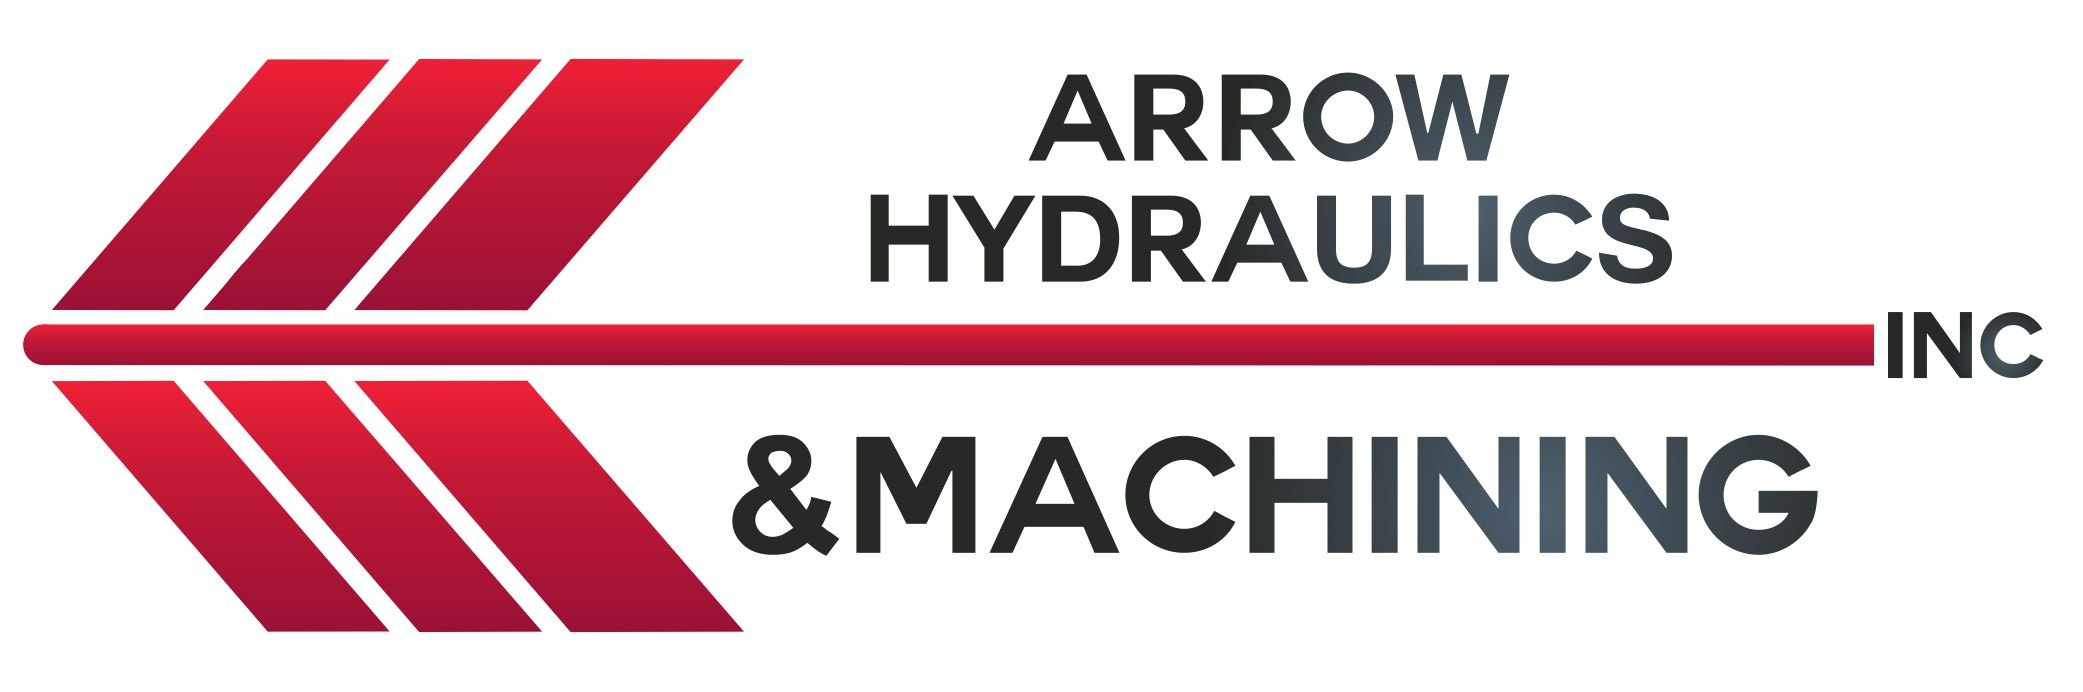 Arrow Hydraulics & Machining Inc.